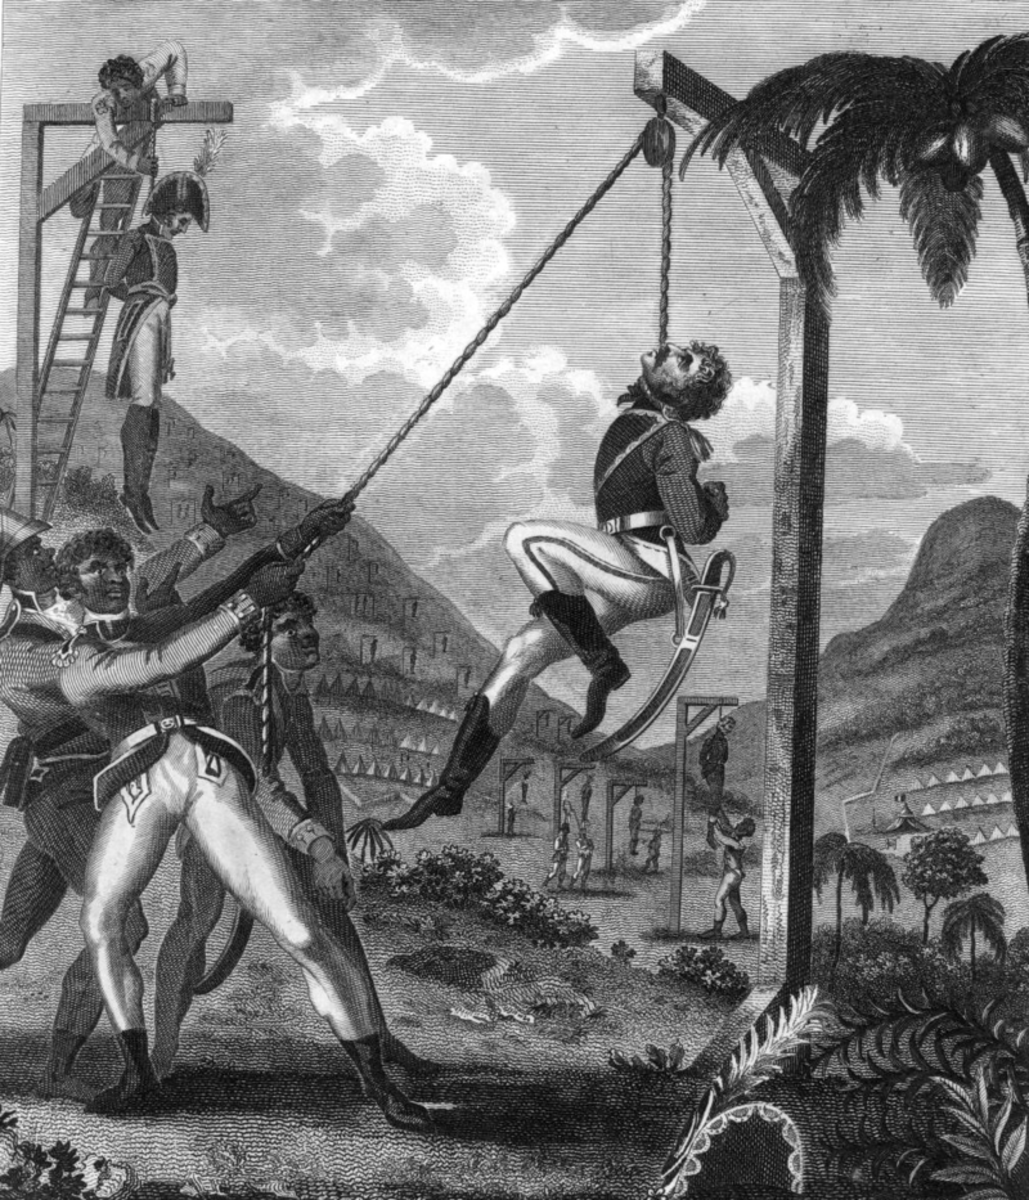 Saint-Domingue was transformed into Haïti by revolution, a bloody and violent conflict which killed the planter class and the white population in general.